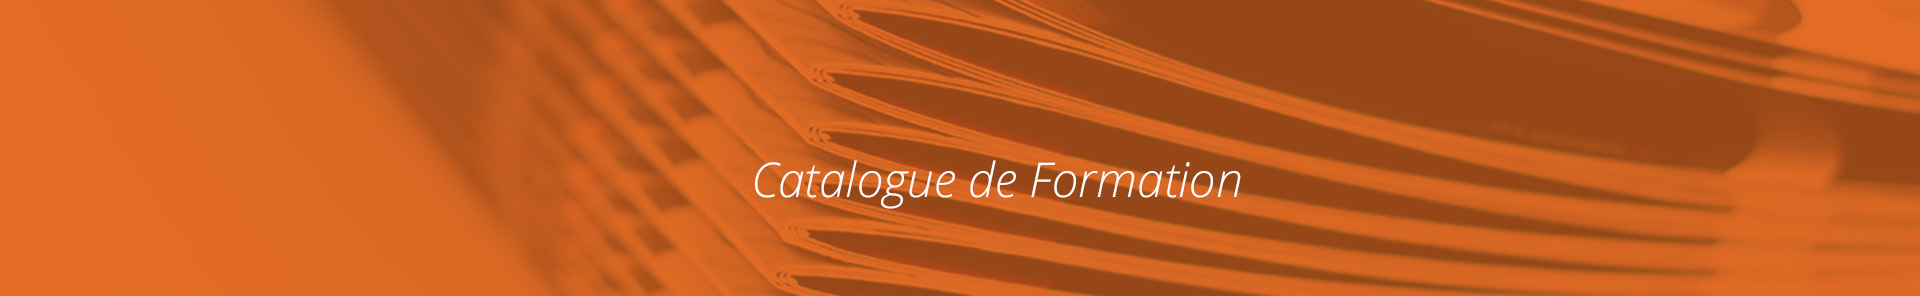 catalogue-de-formation